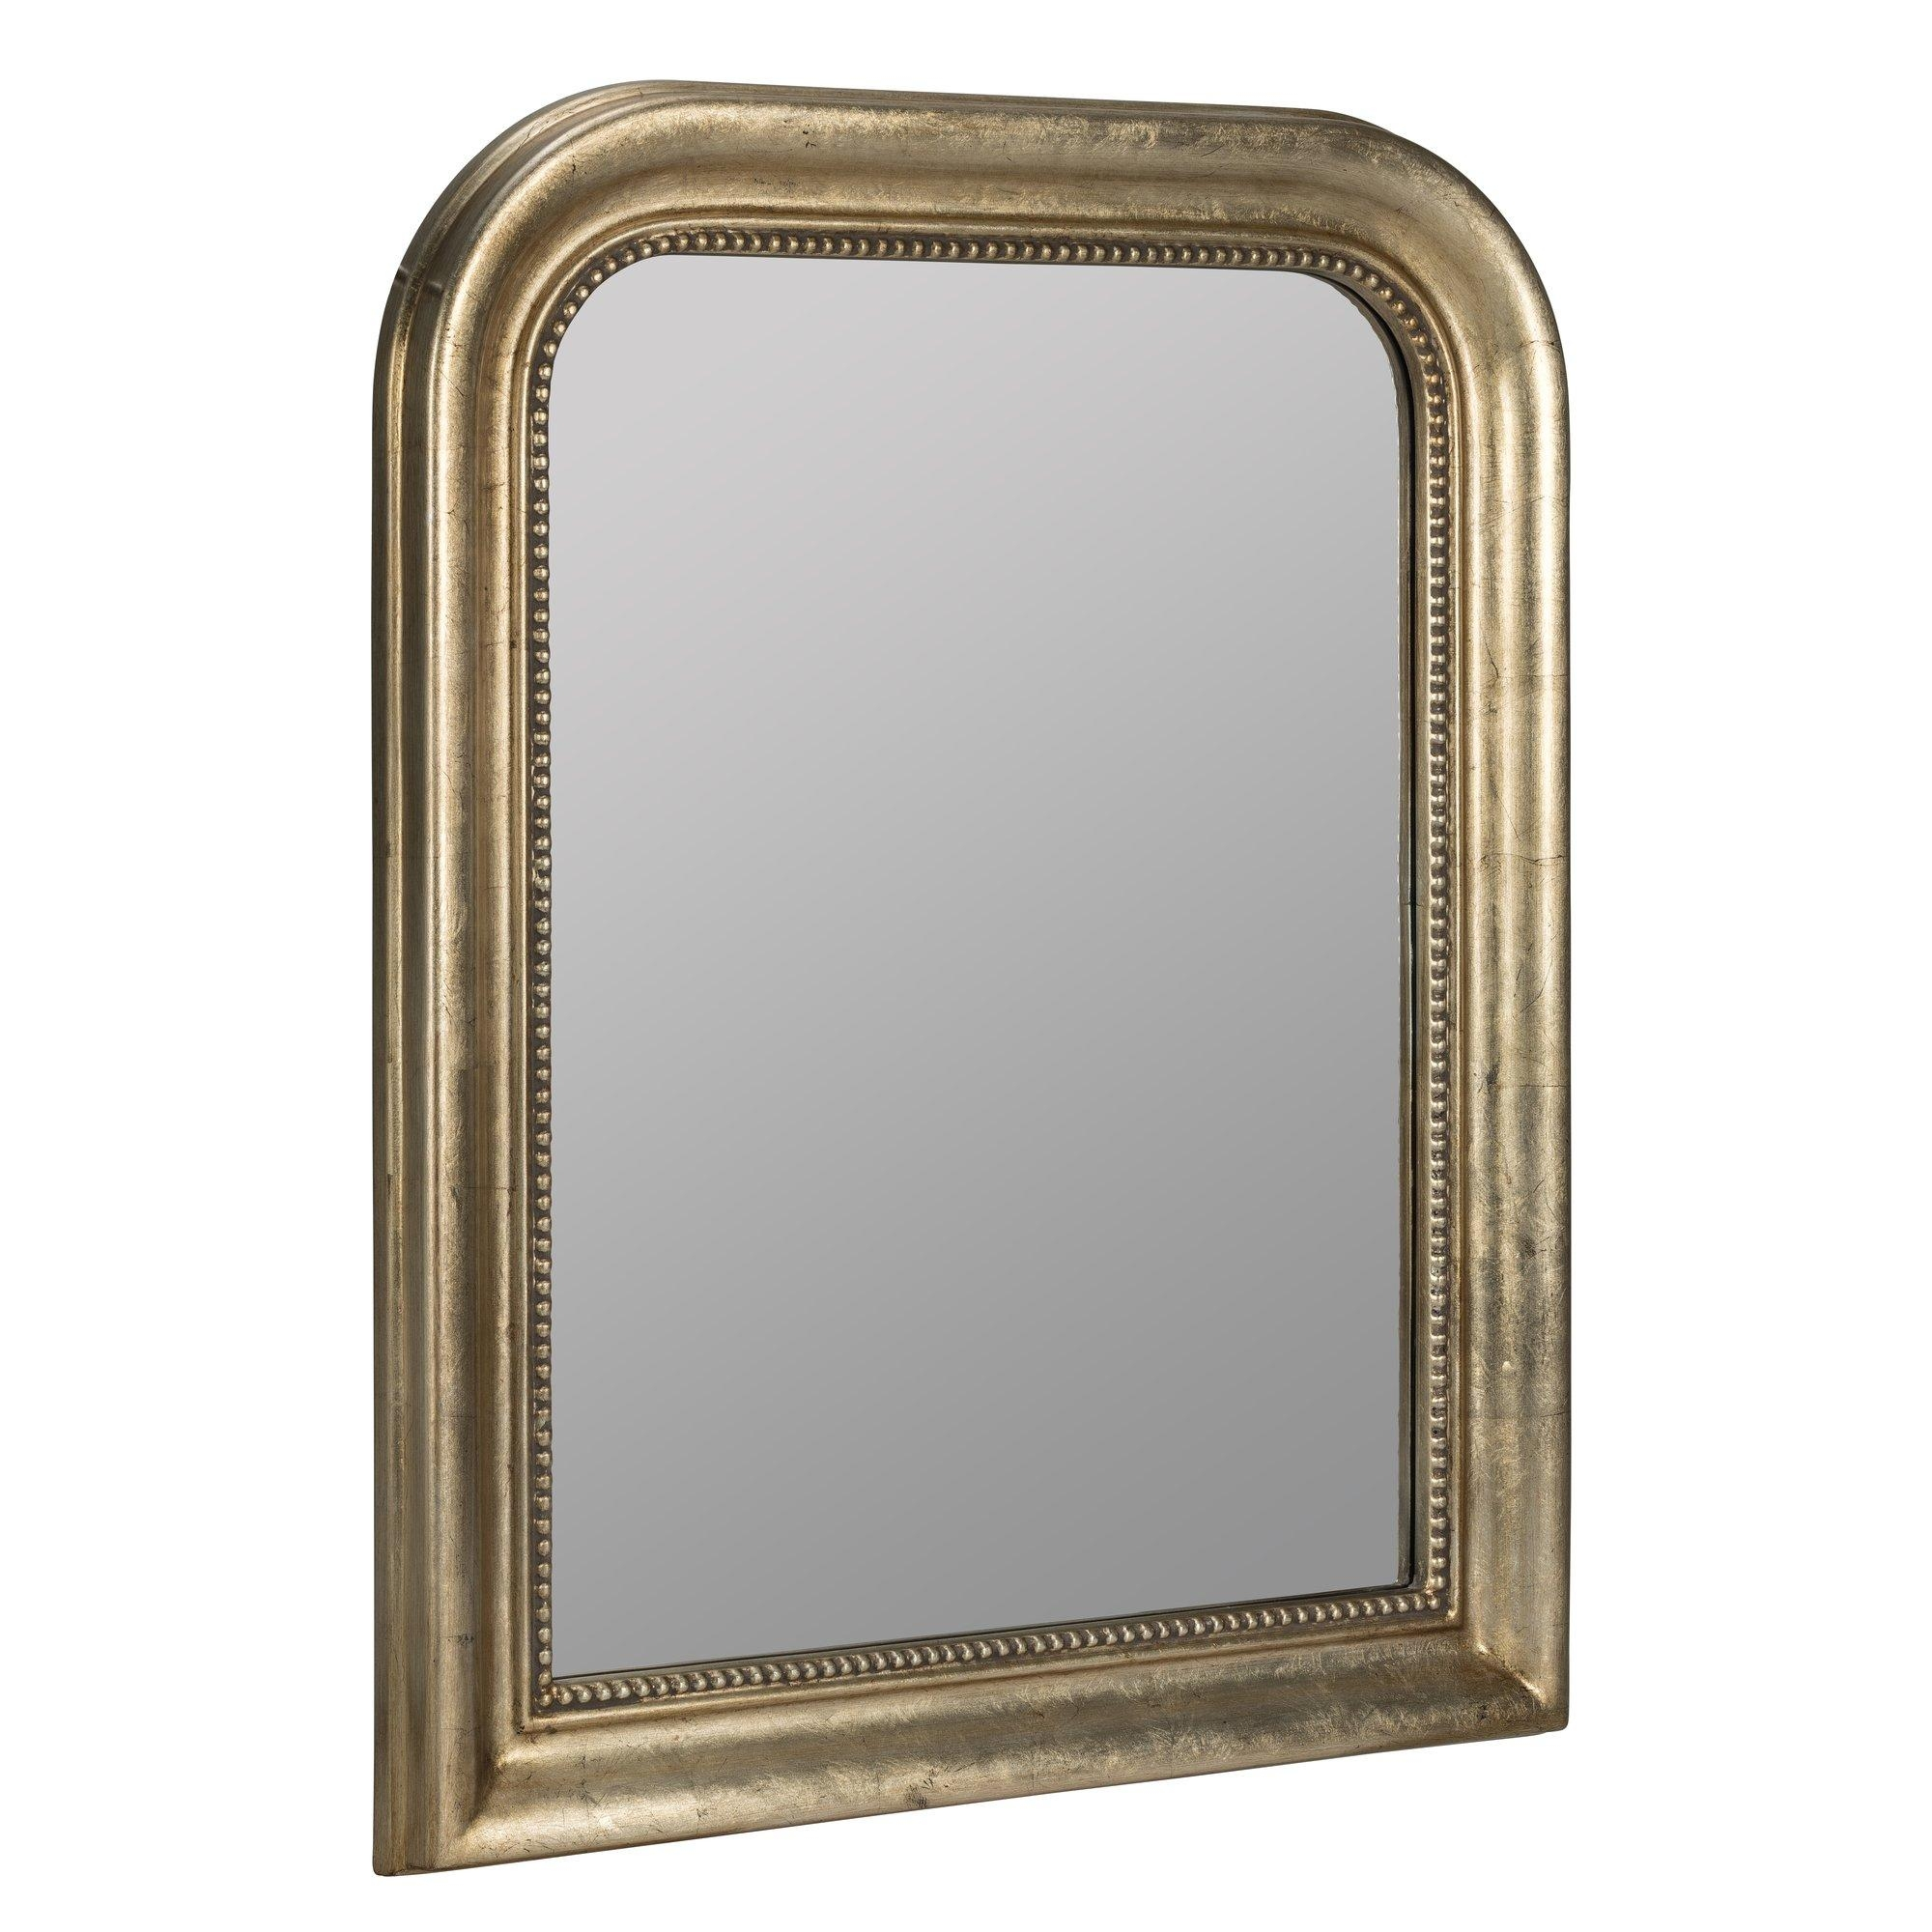 Darby Home Co Antique Champagne Wall Mirror & Reviews | Wayfair Intended For Champagne Mirror (Image 5 of 20)